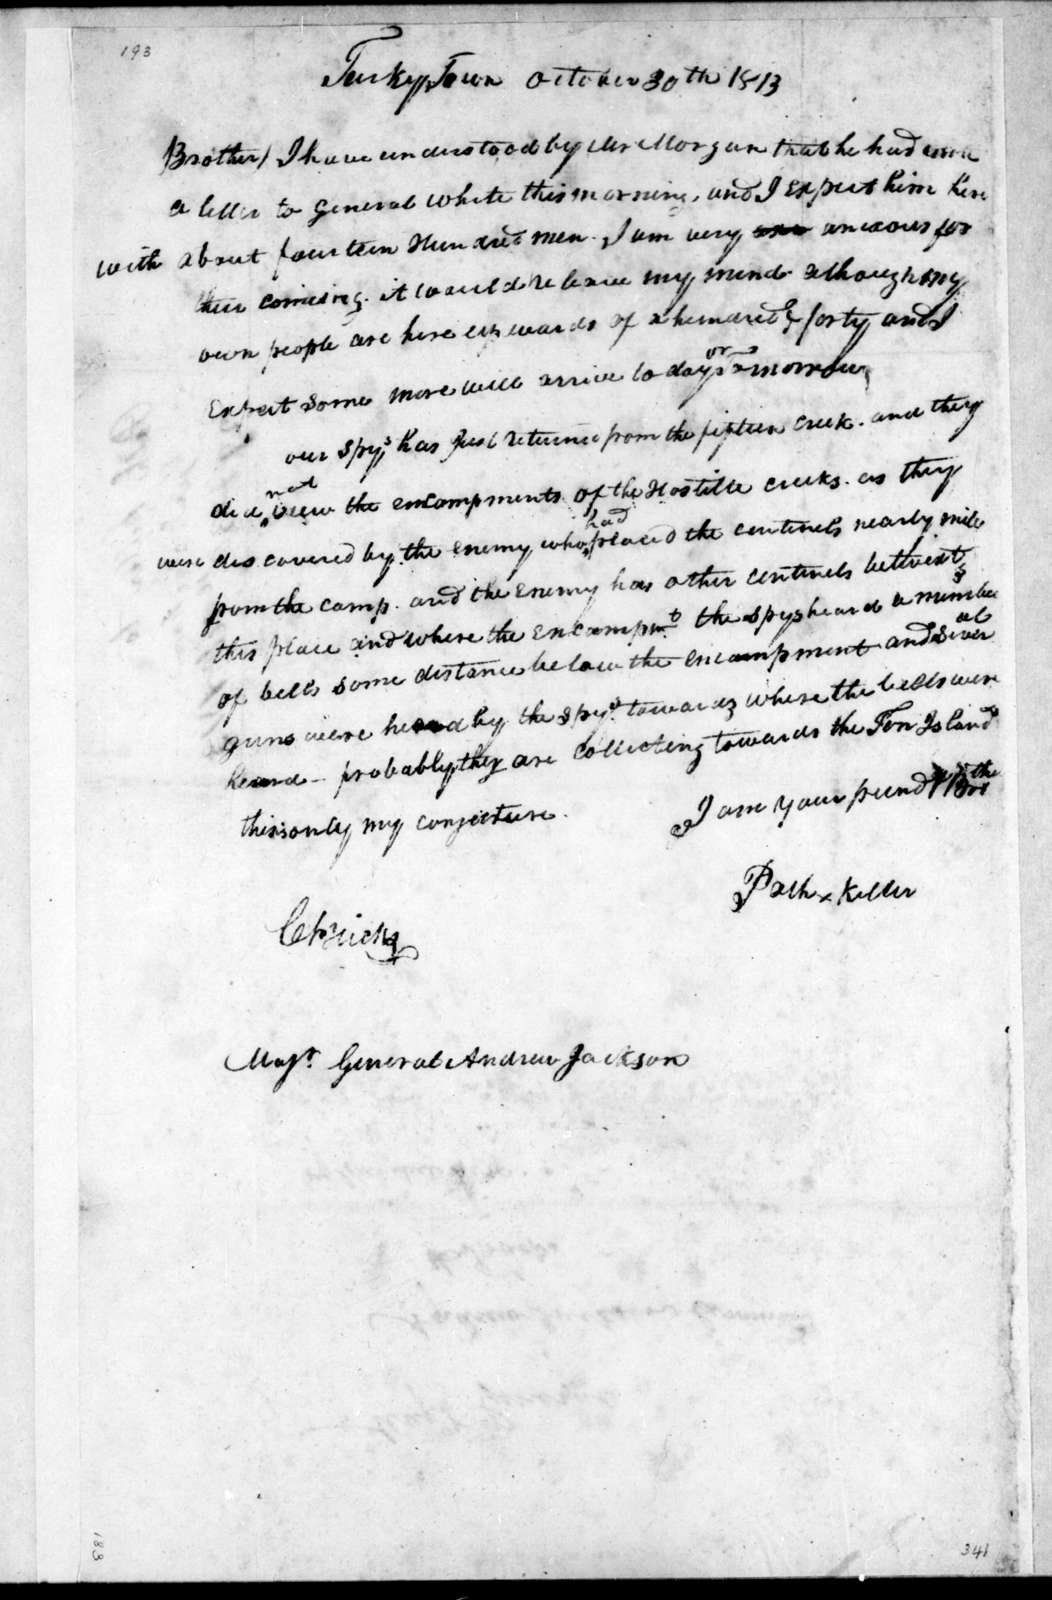 Path Killer [Indian/Native American] to Andrew Jackson, October 30, 1813